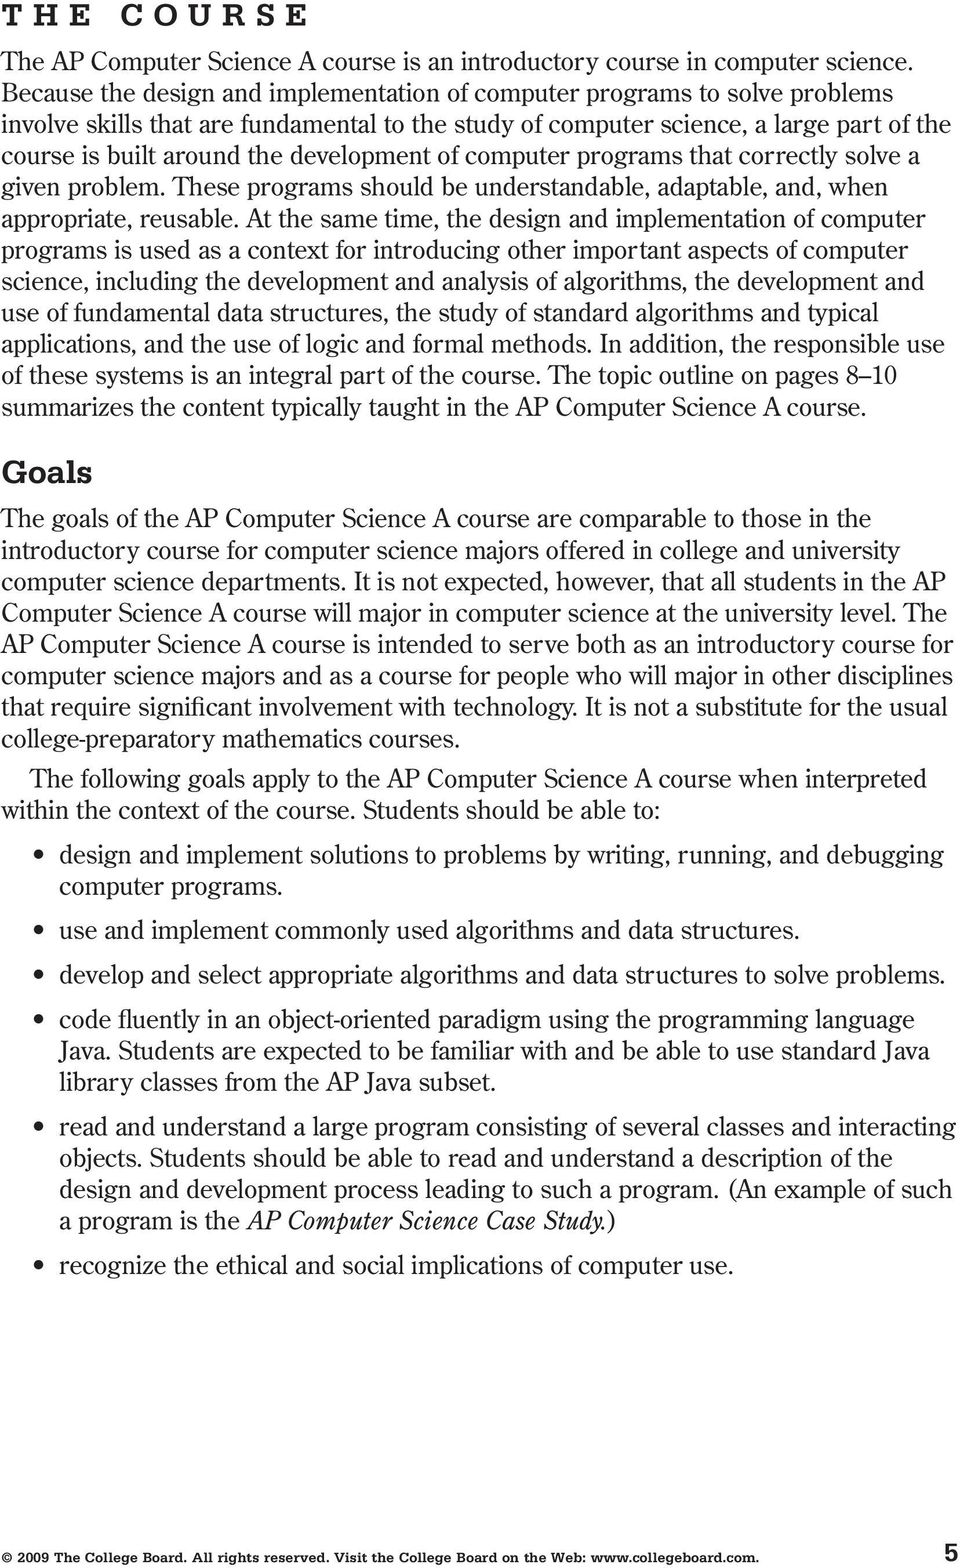 development of computer programs that correctly solve a given problem. These programs should be understandable, adaptable, and, when appropriate, reusable.